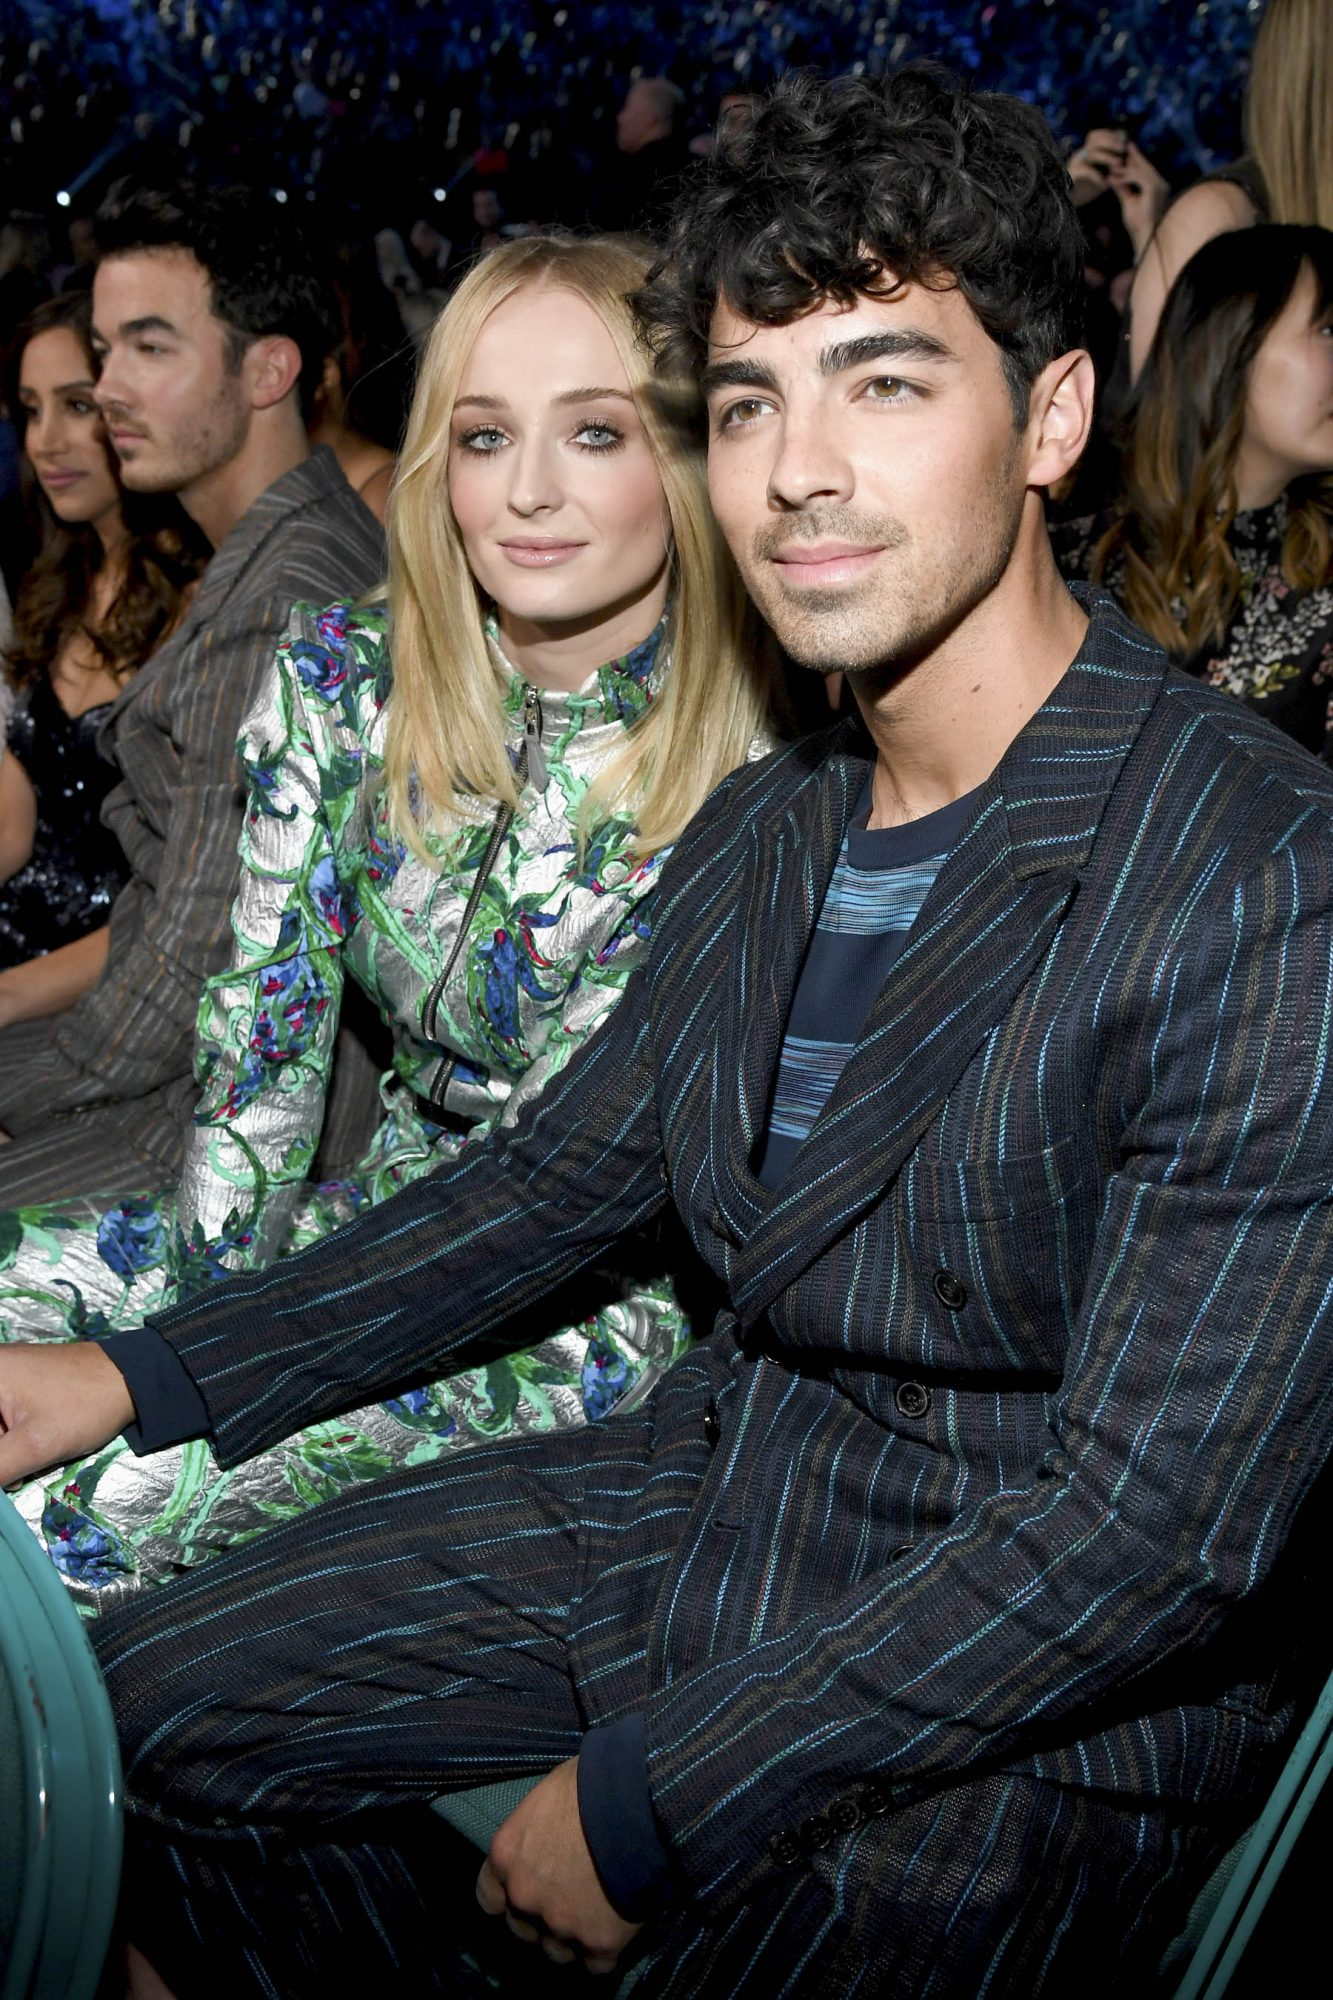 LAS VEGAS, NV - MAY 01: (L-R) Sophie Turner and Joe Jonas attend the 2019 Billboard Music Awards at MGM Grand Garden Arena on May 1, 2019 in Las Vegas, Nevada. (Photo by Kevin Mazur/Getty Images for dcp)